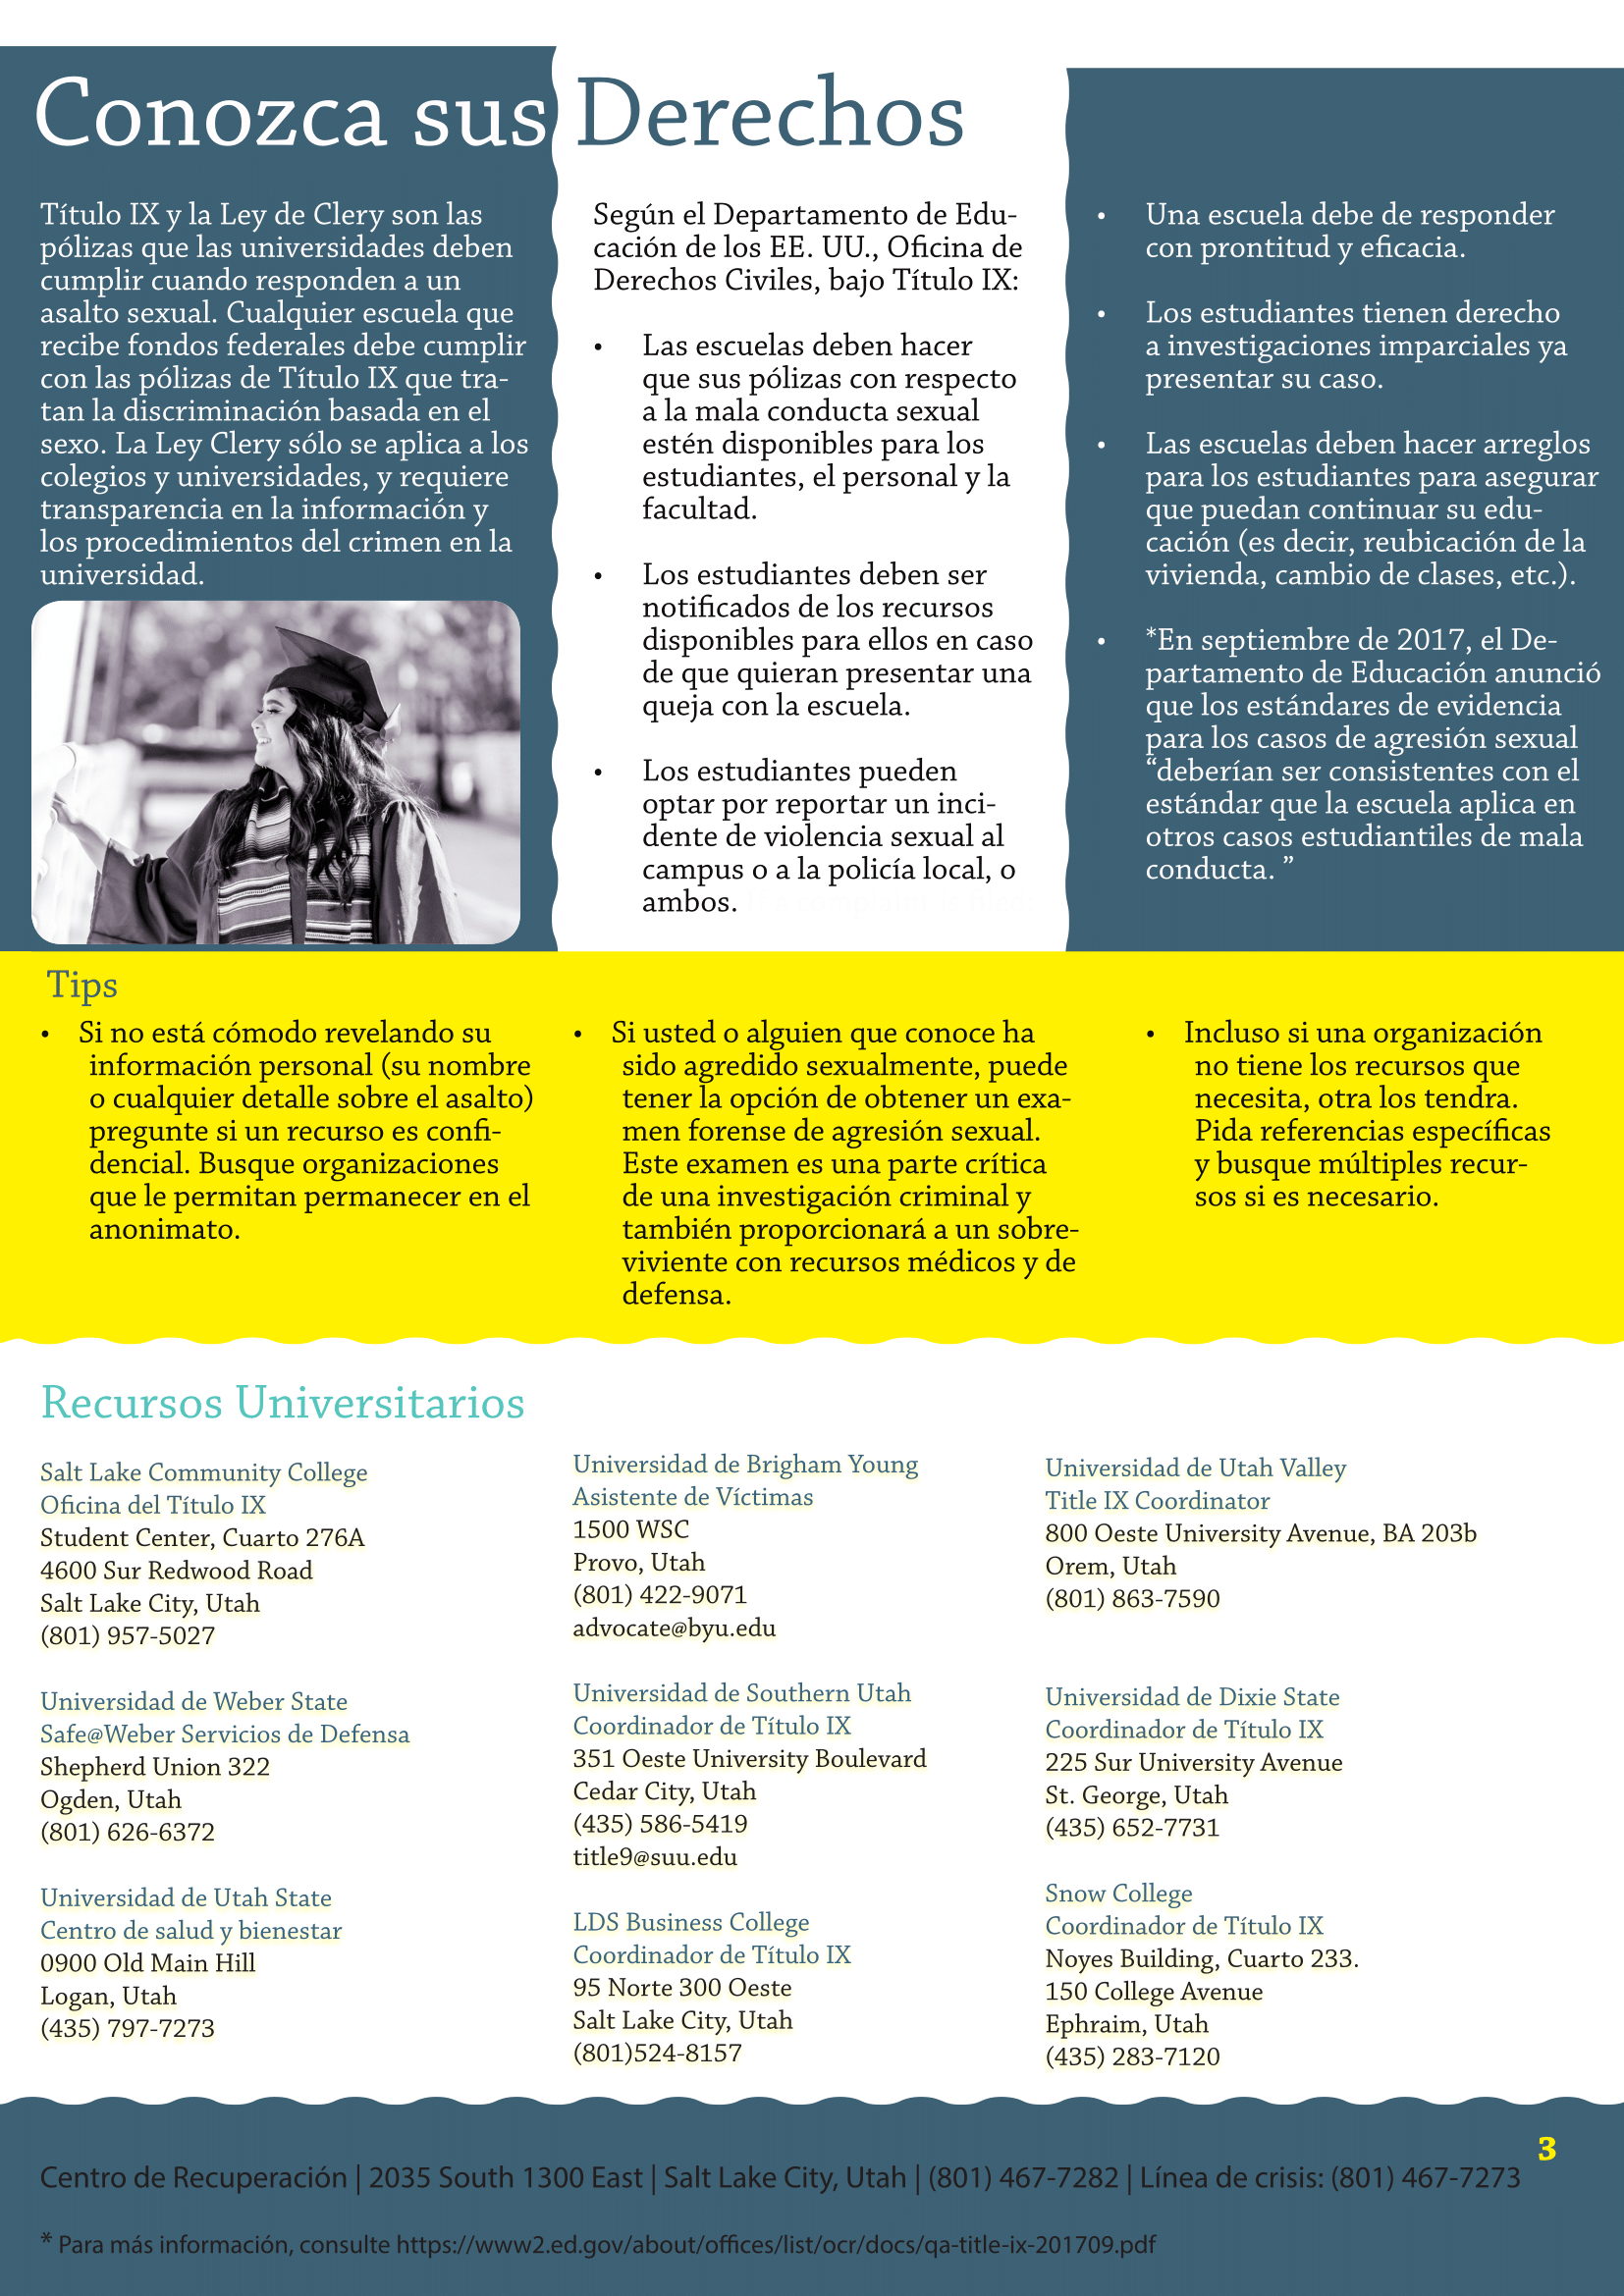 newsletter copy-Spanish 2 updated-3.png